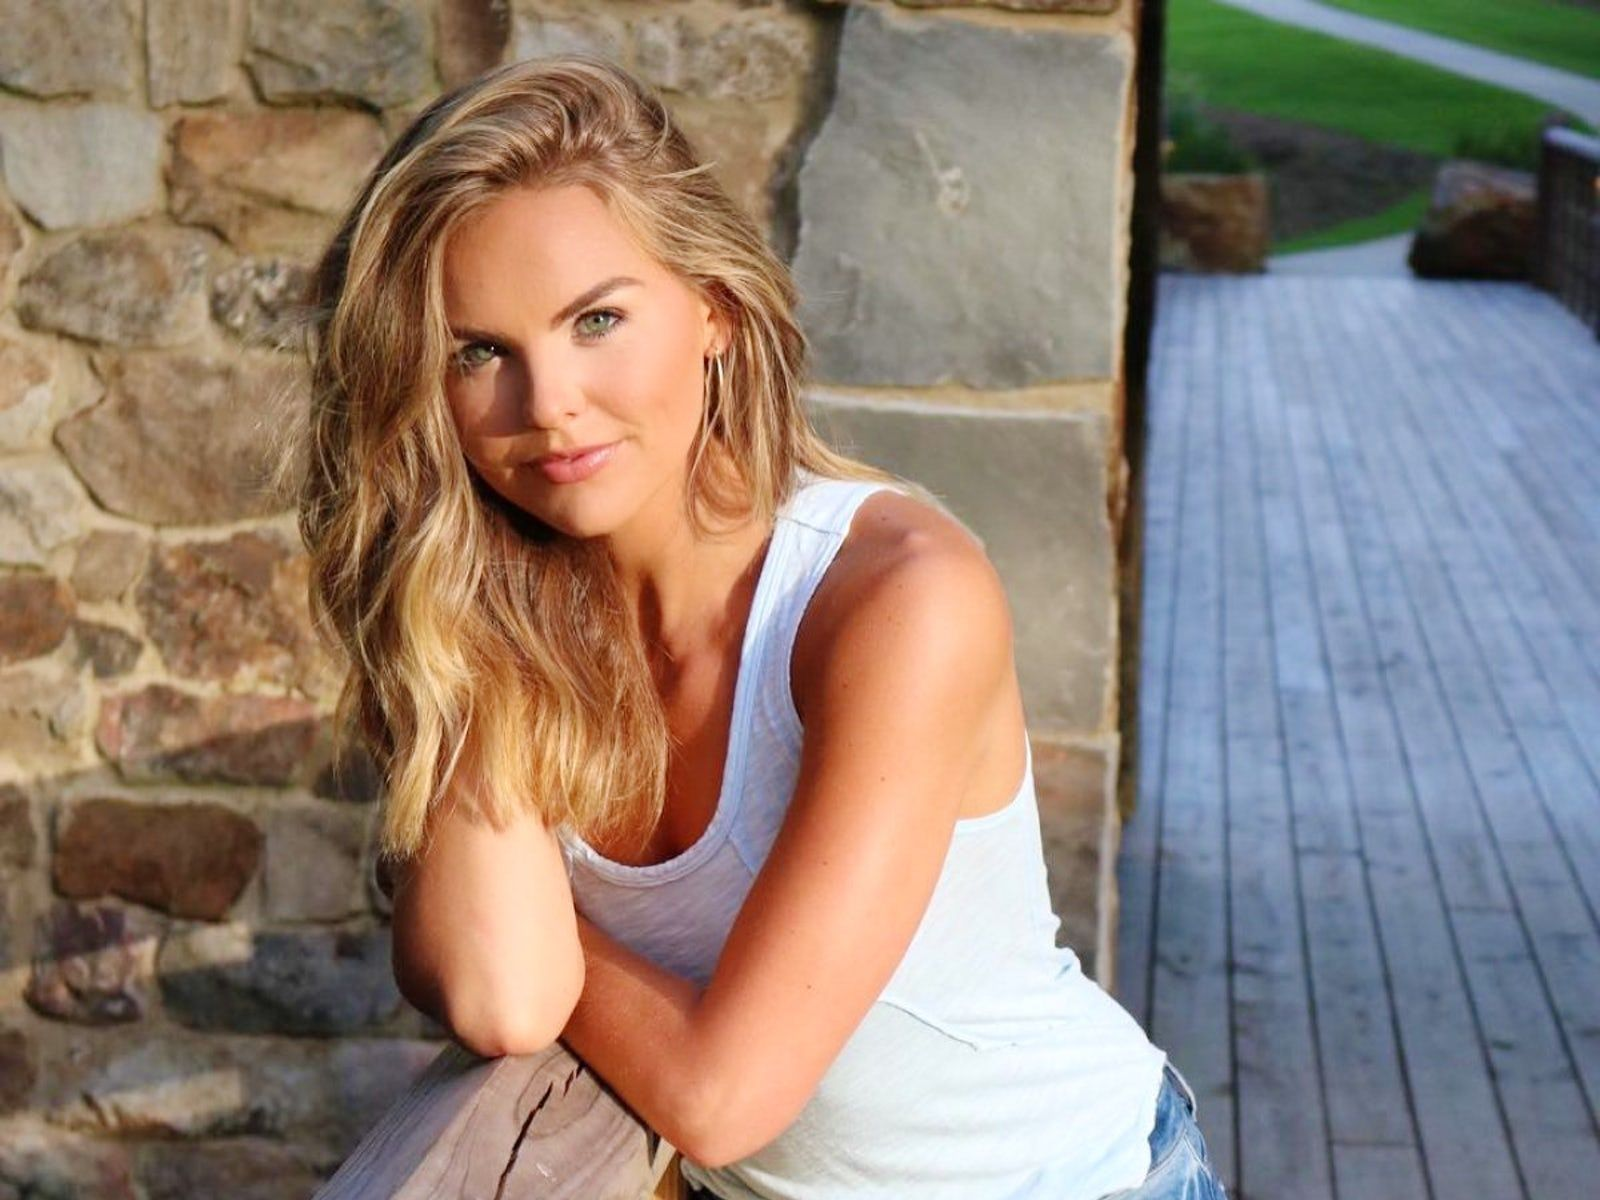 Hannah Brown 10 Things To Know About The Bachelor Star Colton Underwood S Bachelorette Hannah Brown Plus Photo Gallery Hannah Brown Colton Underwood Bachelorette